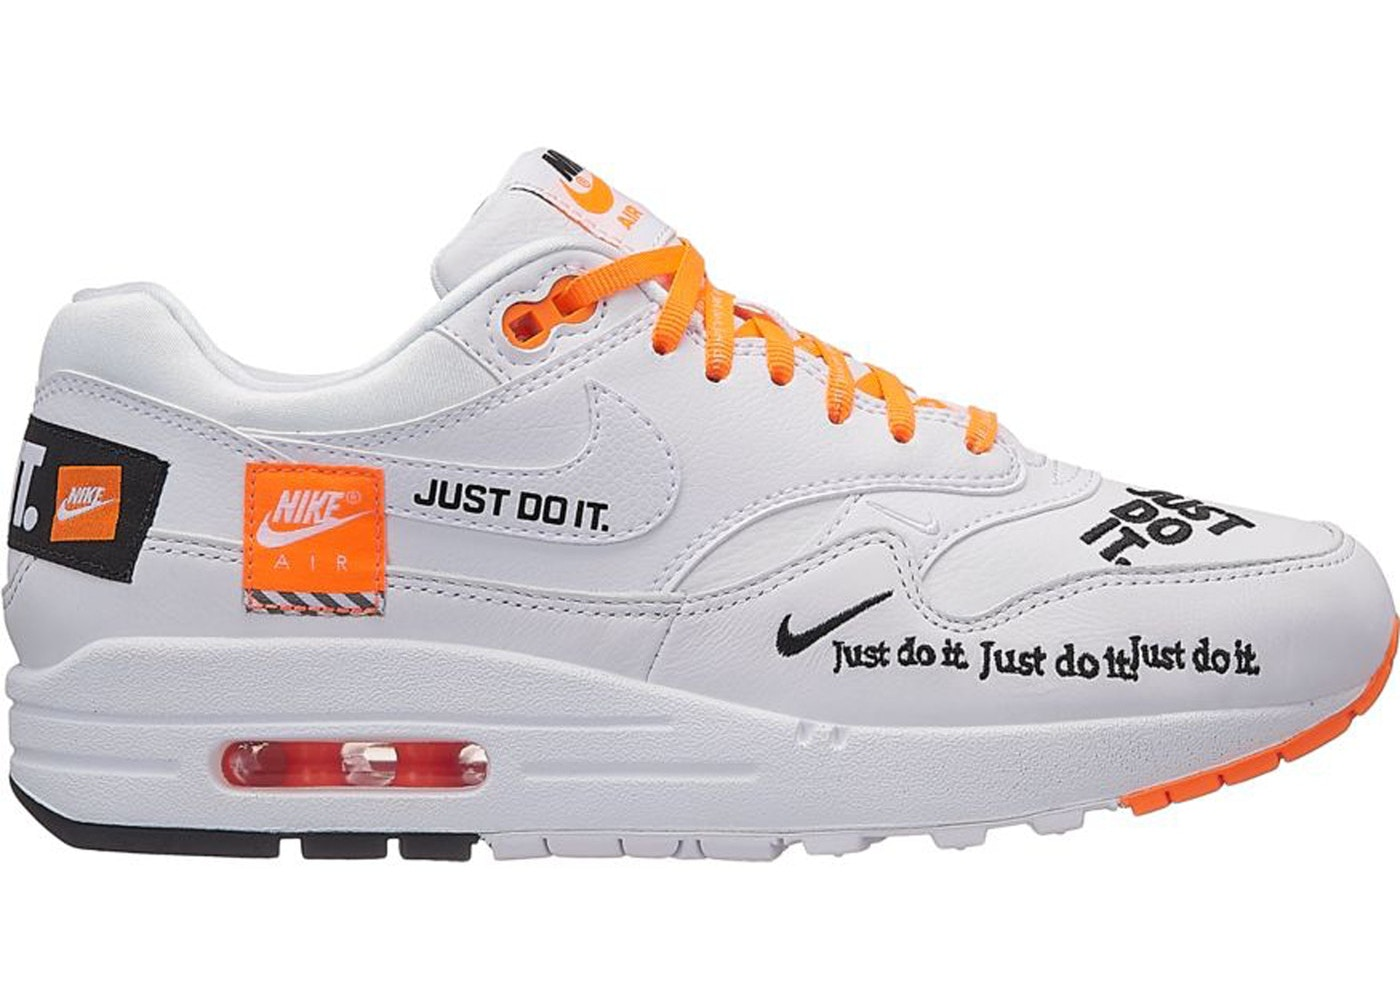 Air Max 1 Just Do It Pack White